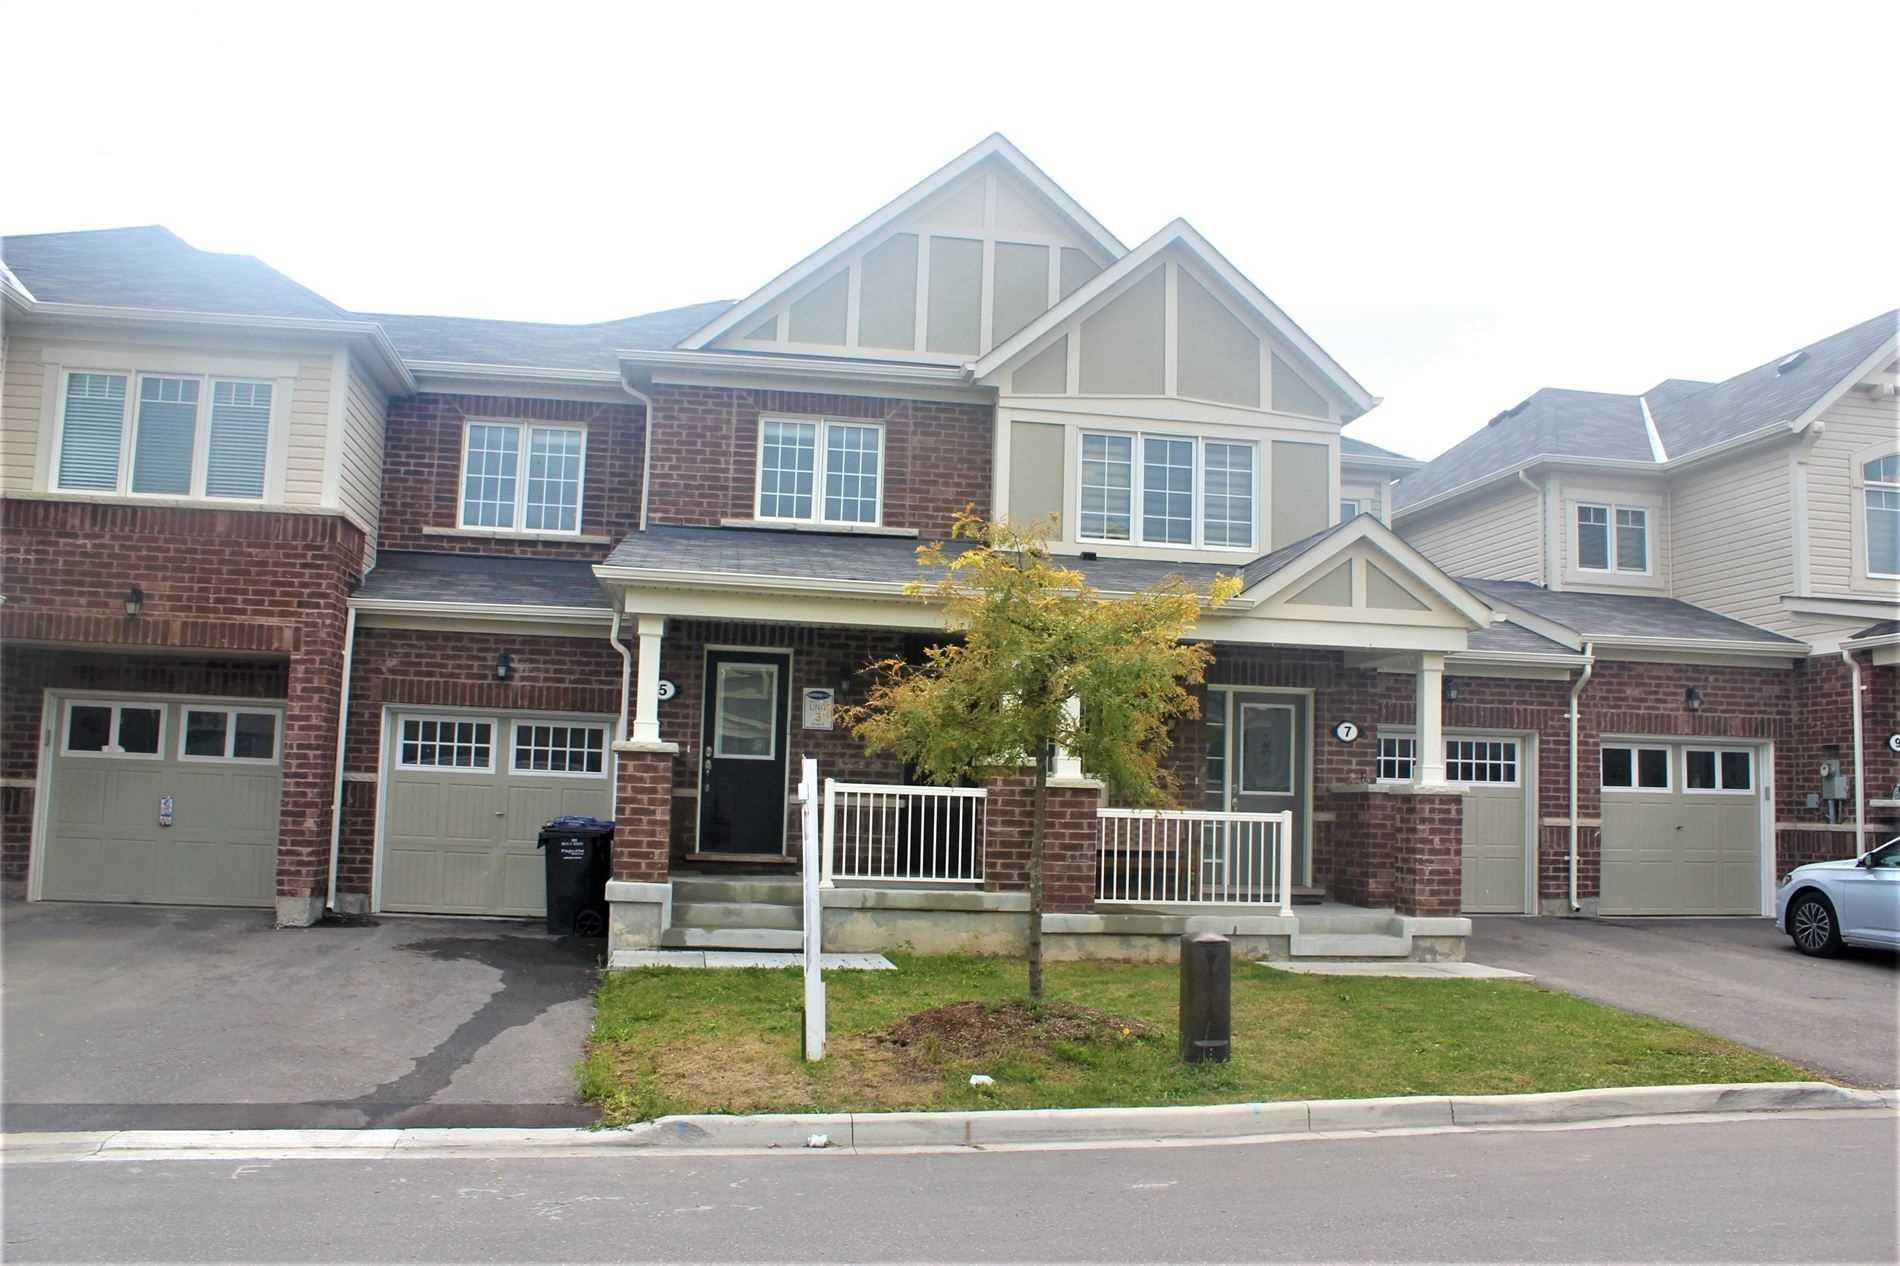 Outstanding Houses For Rent In Brampton Search Mls Zoocasa Best Image Libraries Barepthycampuscom